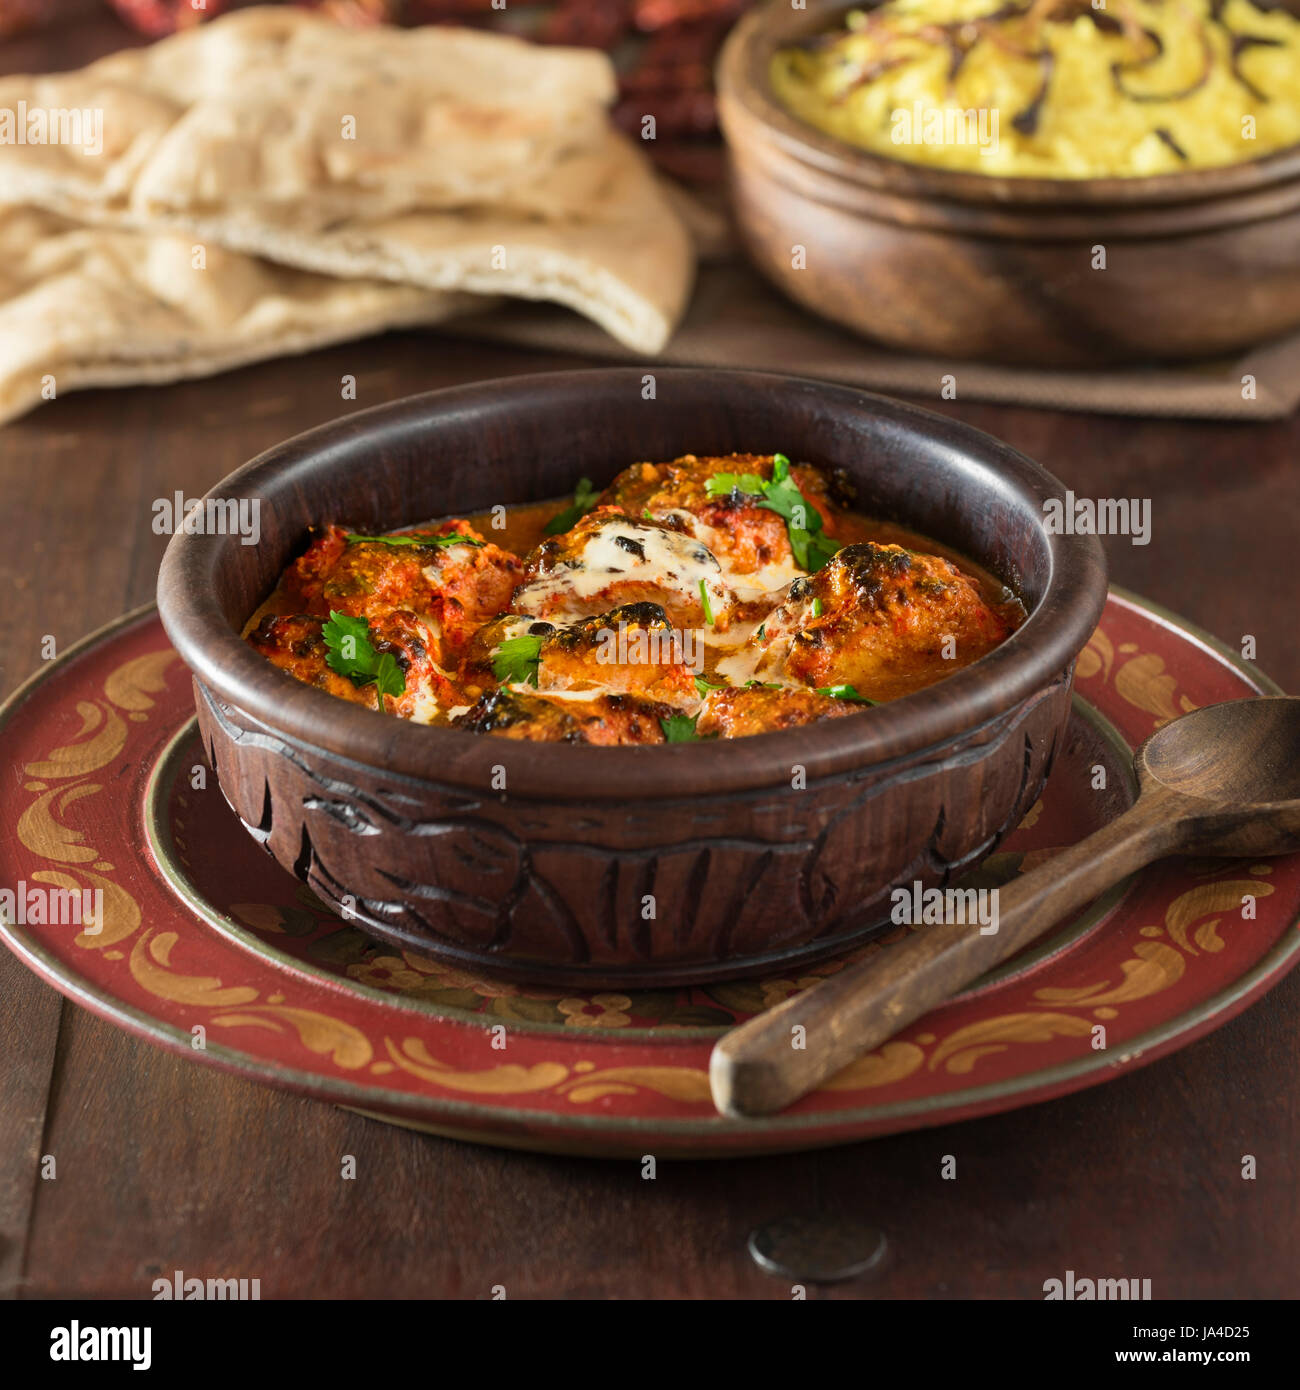 Murgh makhani indian butter chicken curry india food stock photo murgh makhani indian butter chicken curry india food forumfinder Image collections